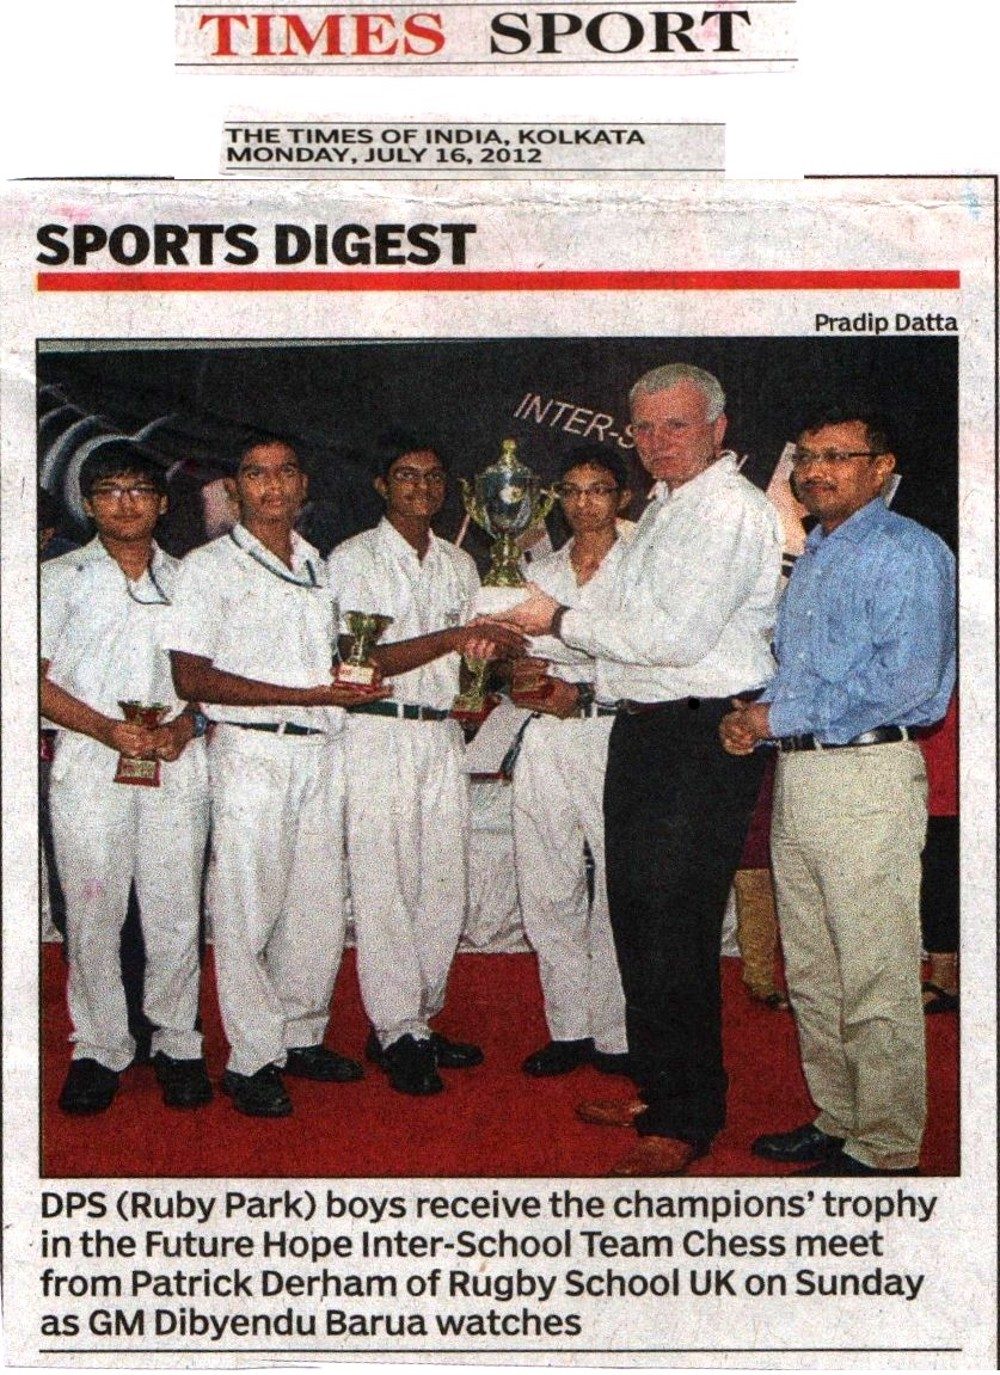 Champions-in-the-Inter-School-Chess-Meet-July-12